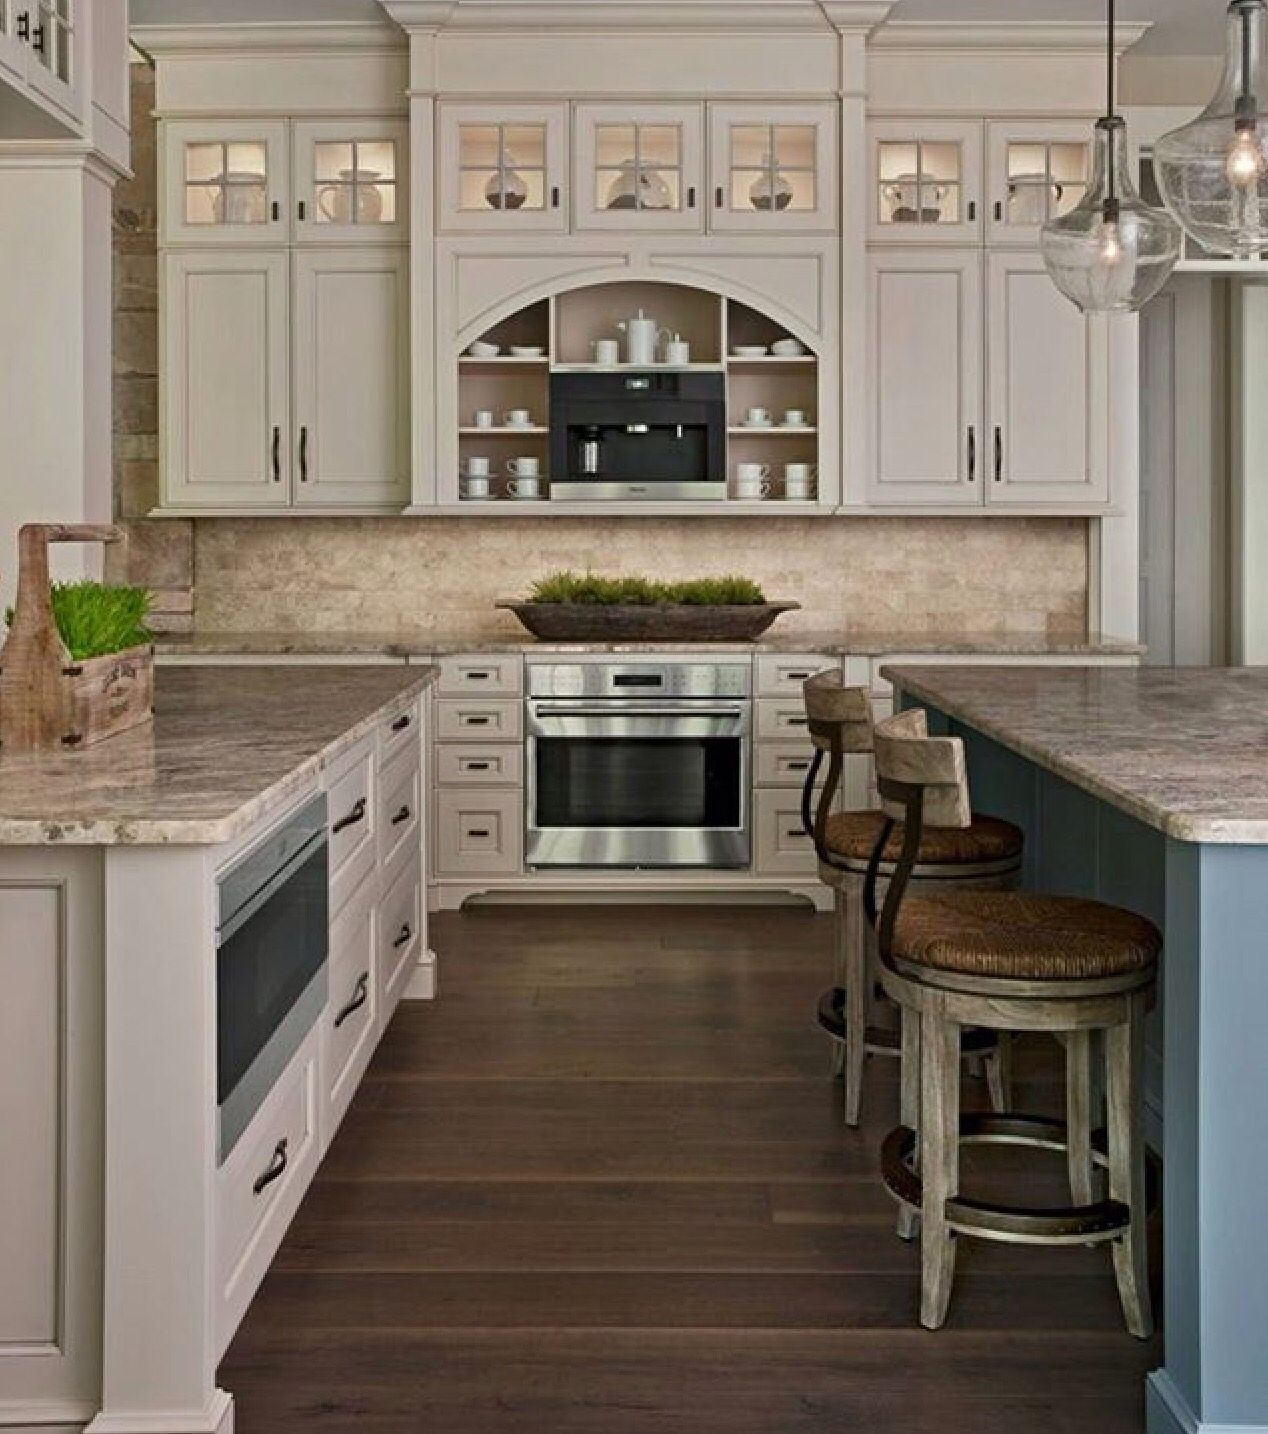 Travertine Floor Kitchen Love This Kitchen Cream Cabinets Travertine Backsplash Granite